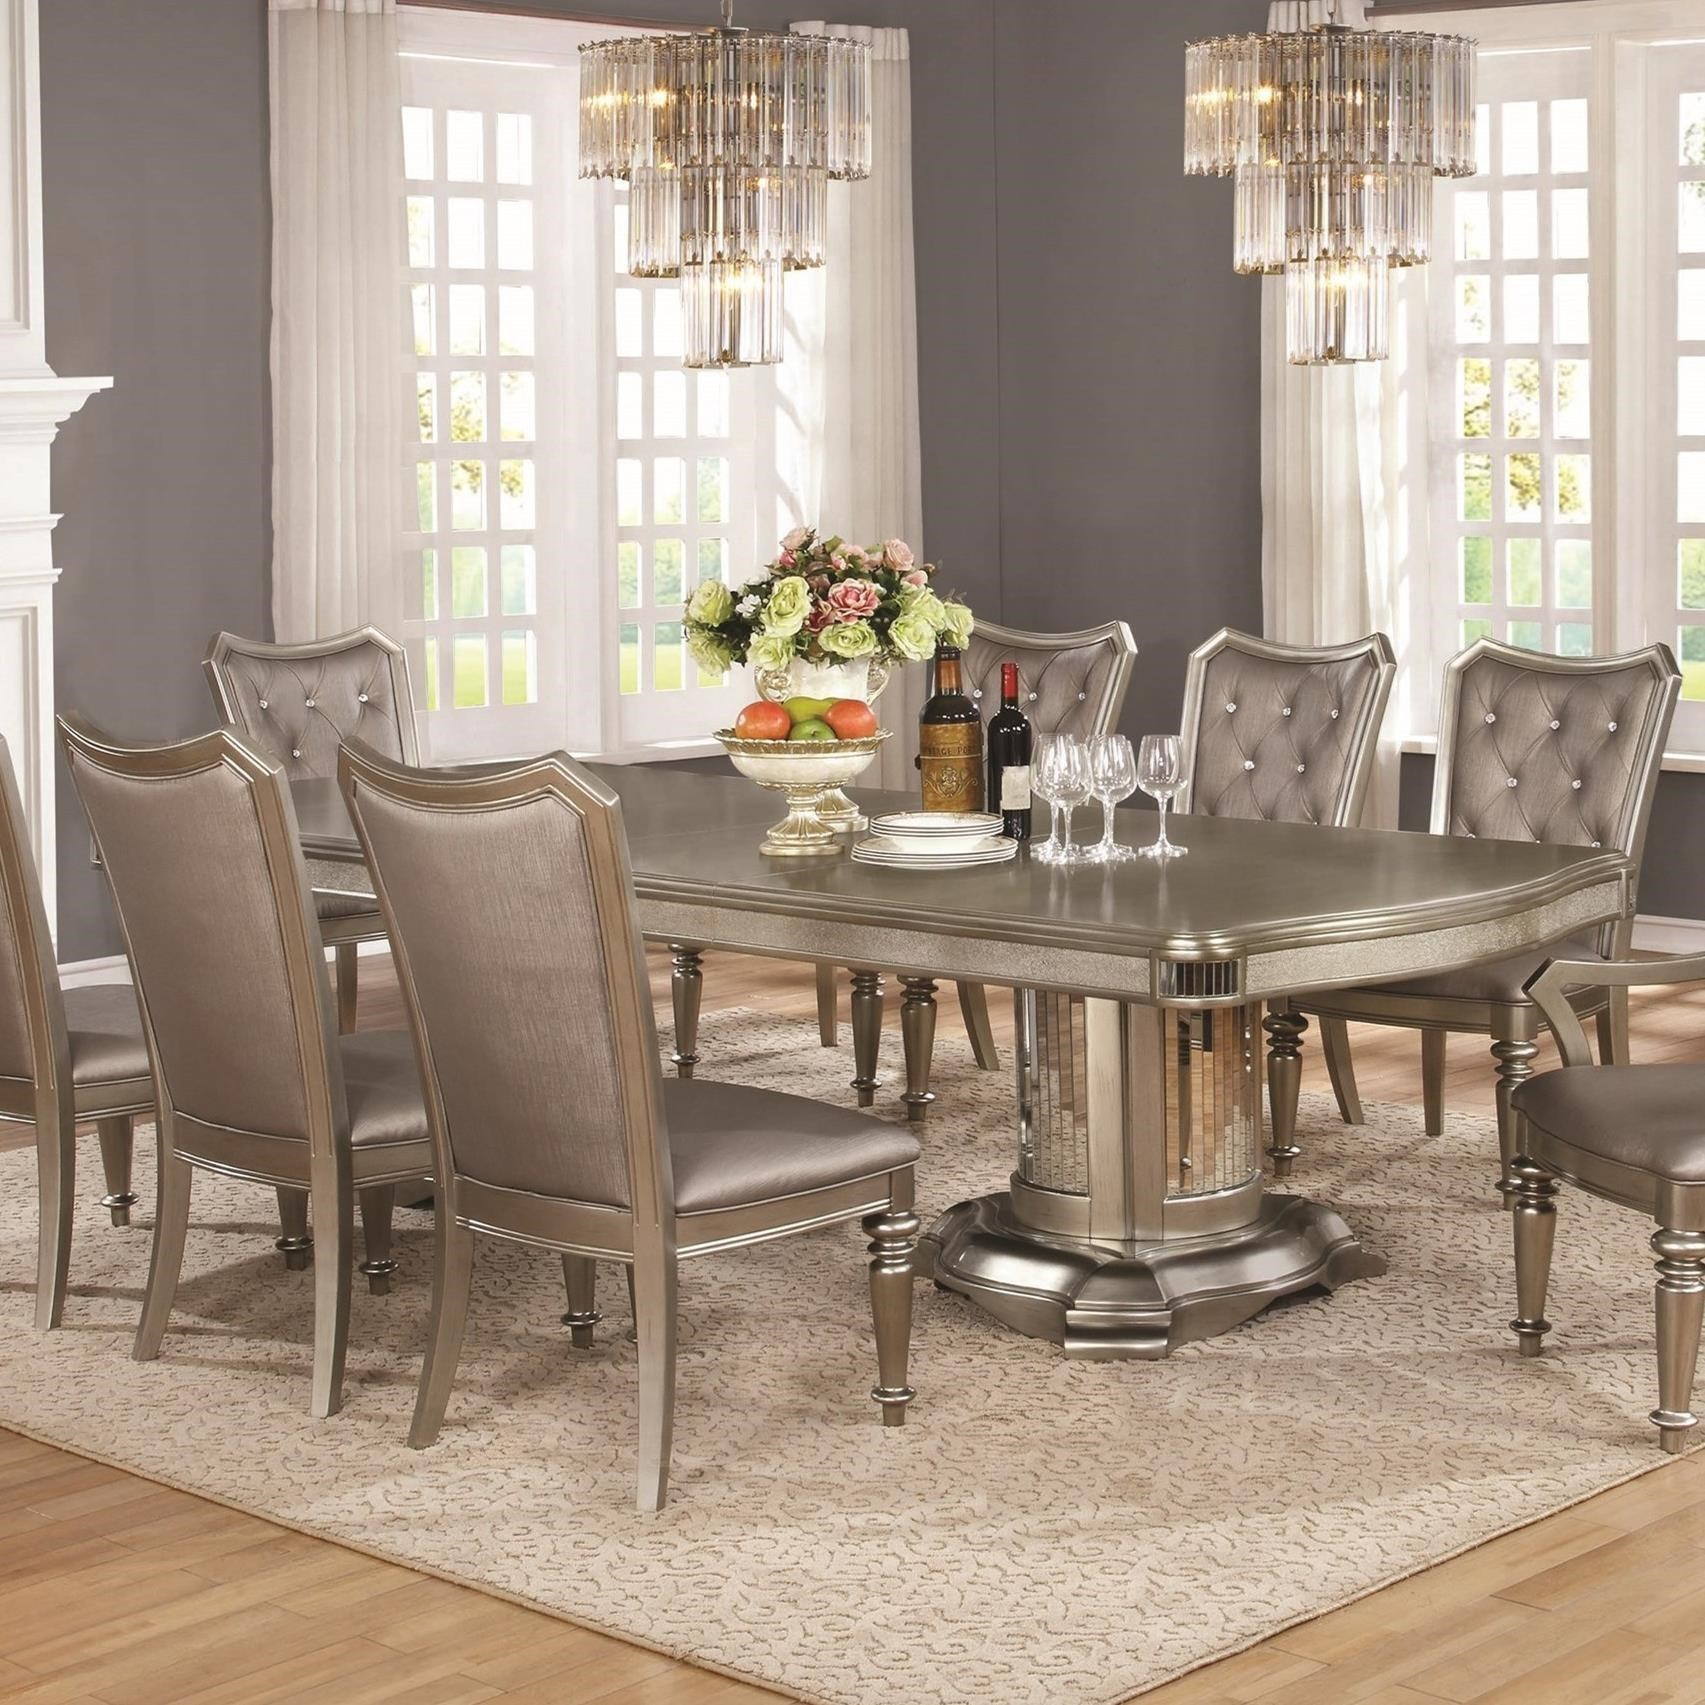 pedestal dining room table. Coaster DanetteDouble Pedestal Dining Table Room A